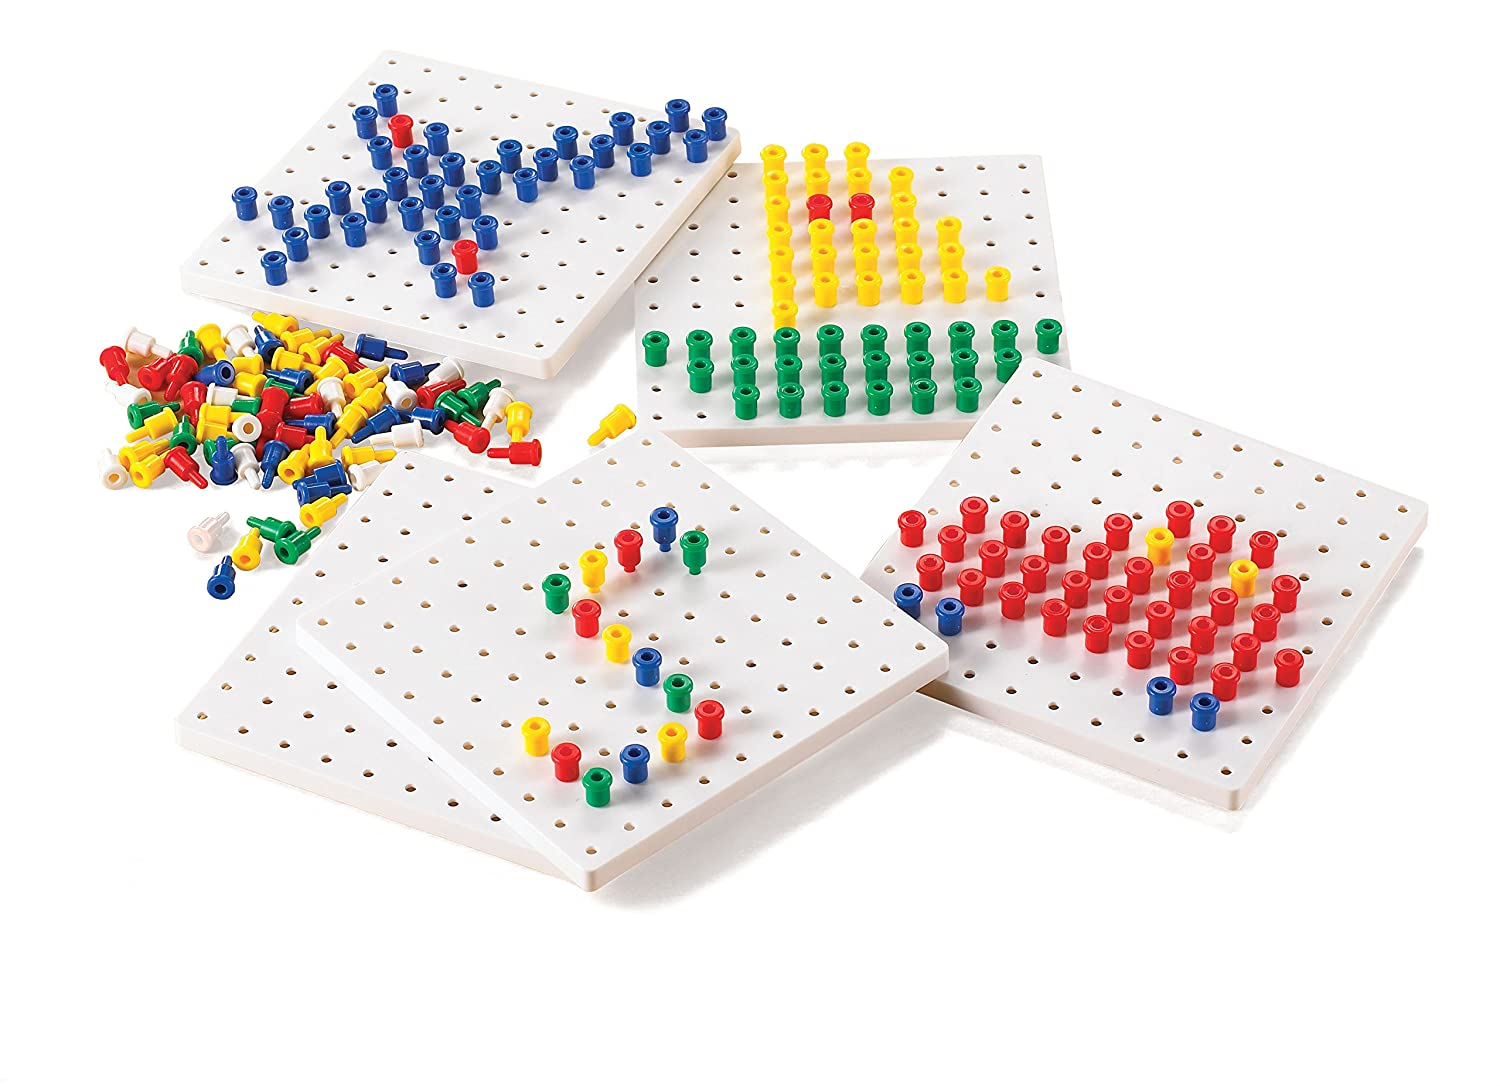 edx education 52440 5 Peg Boards with Pegs